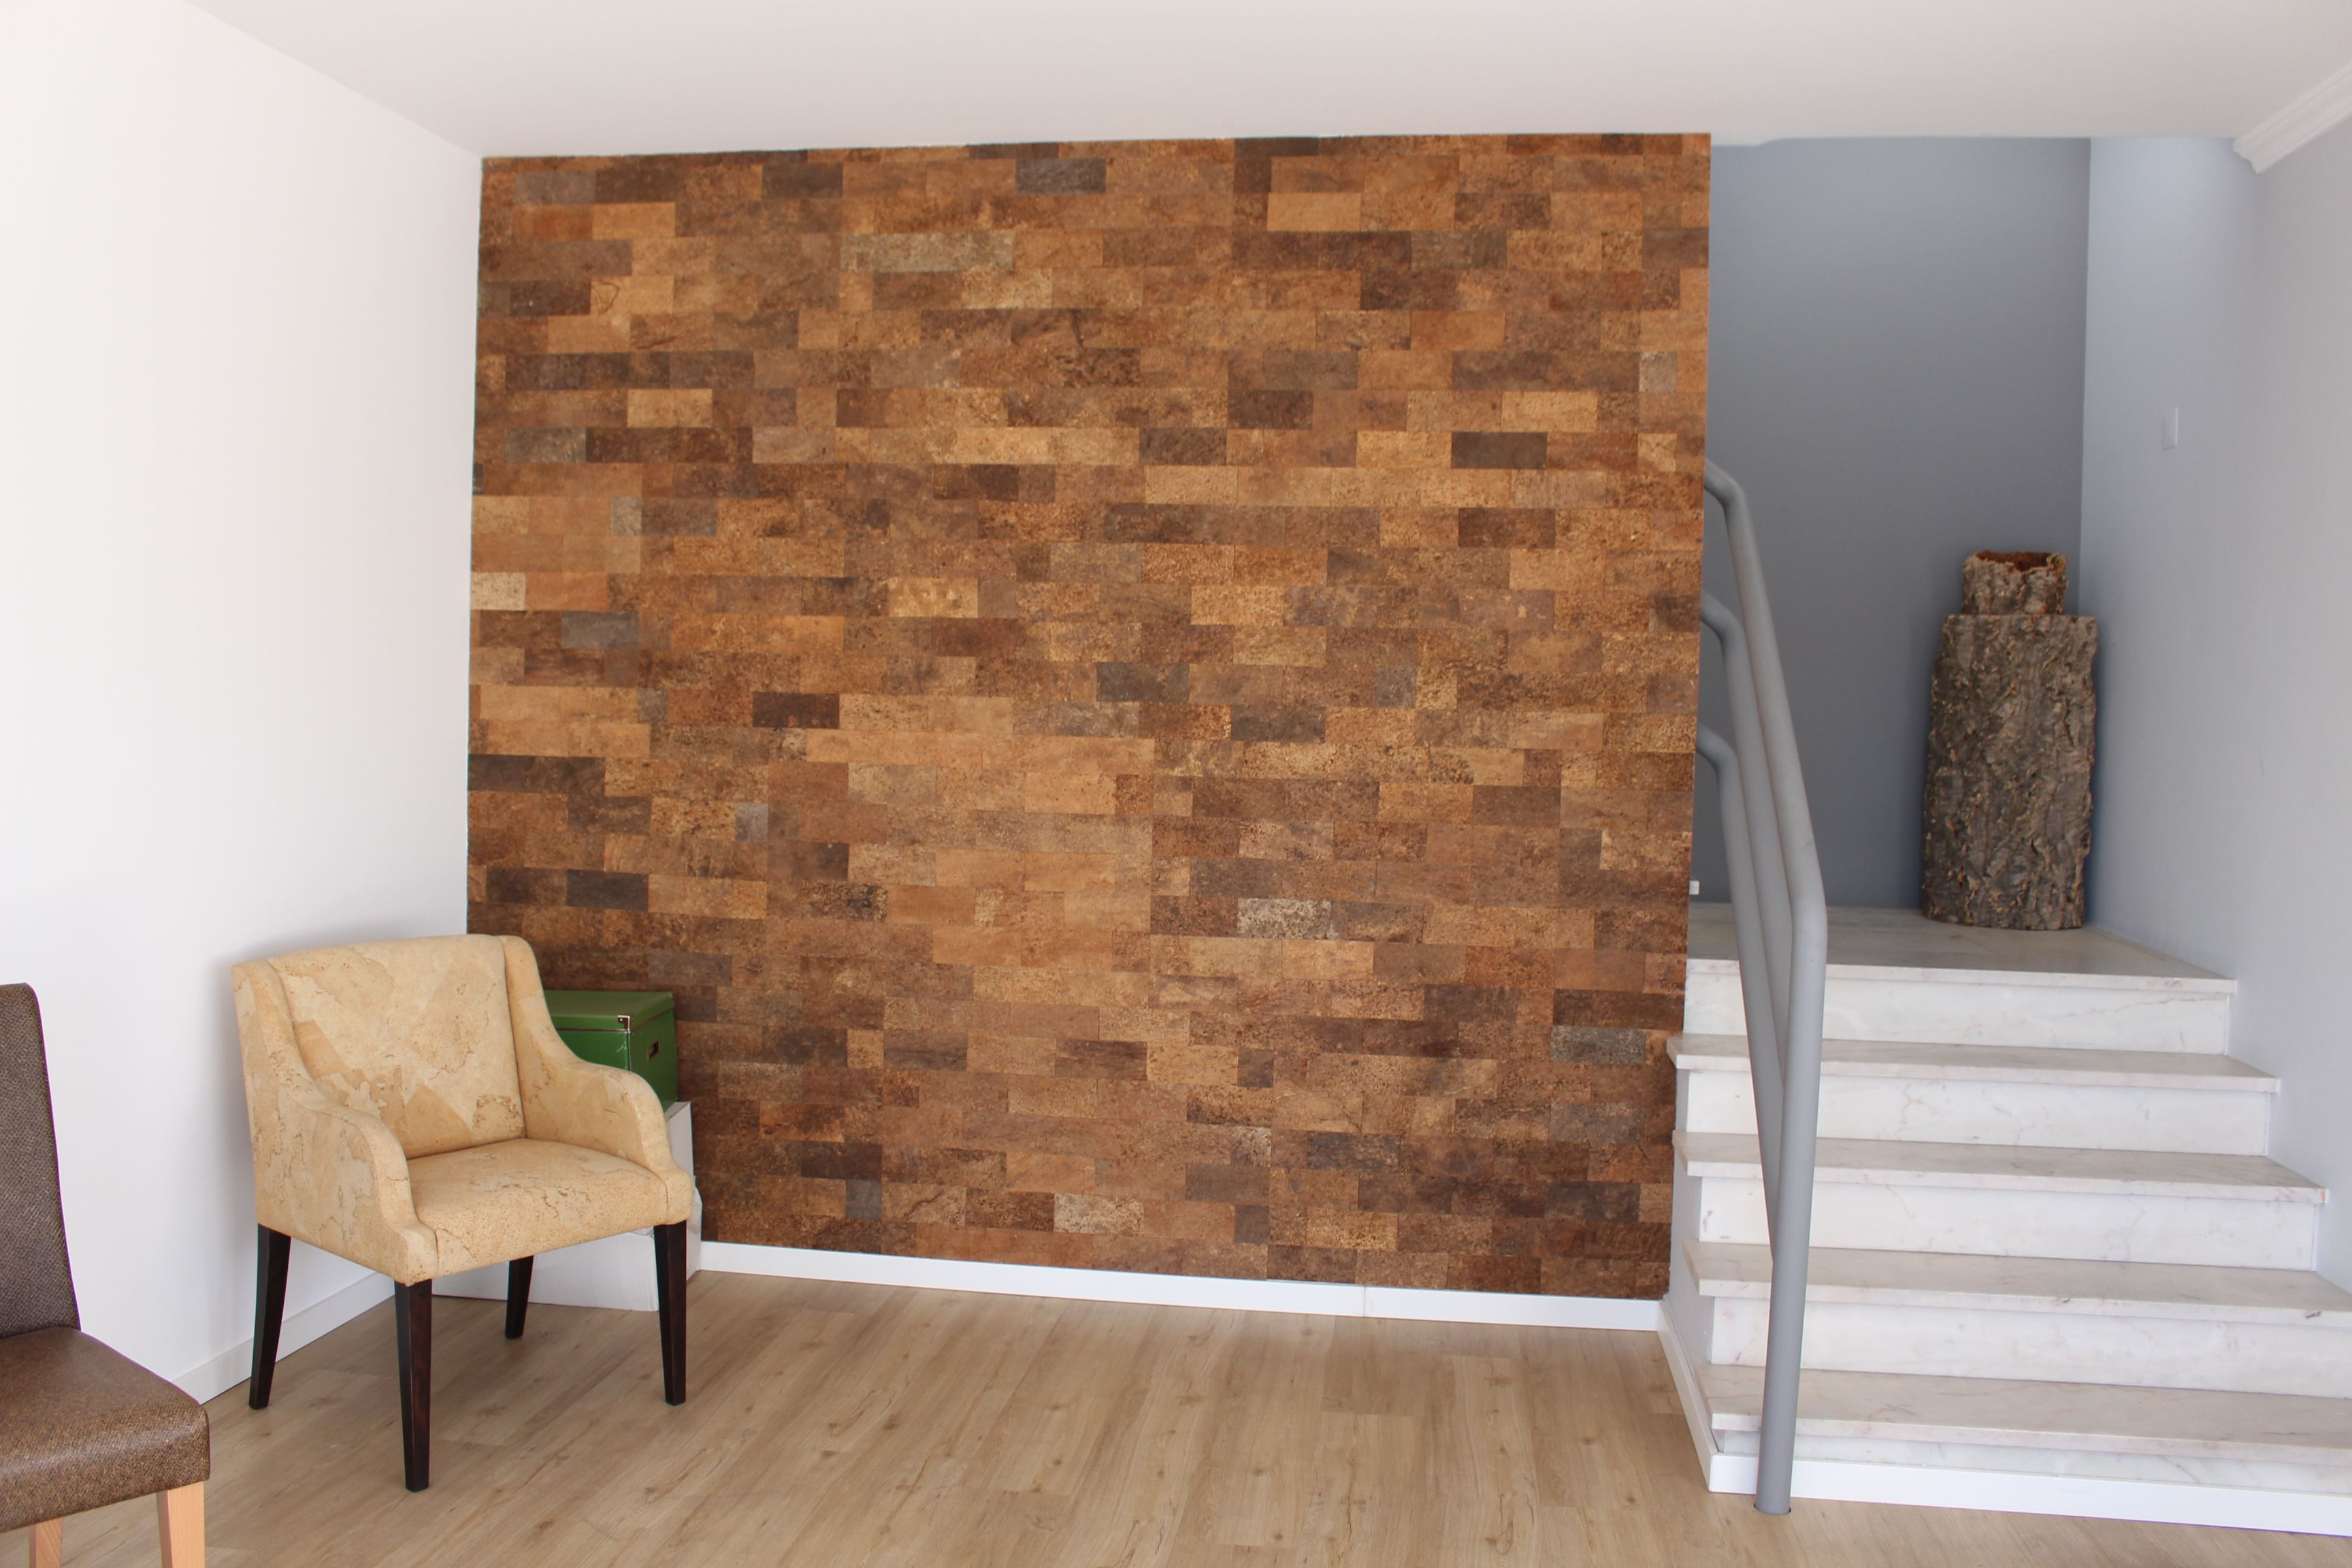 Install Cork Wall Panels And Reap The Benefits In 2020 Cork Wall Panels Cork Wall Tiles Cork Wall